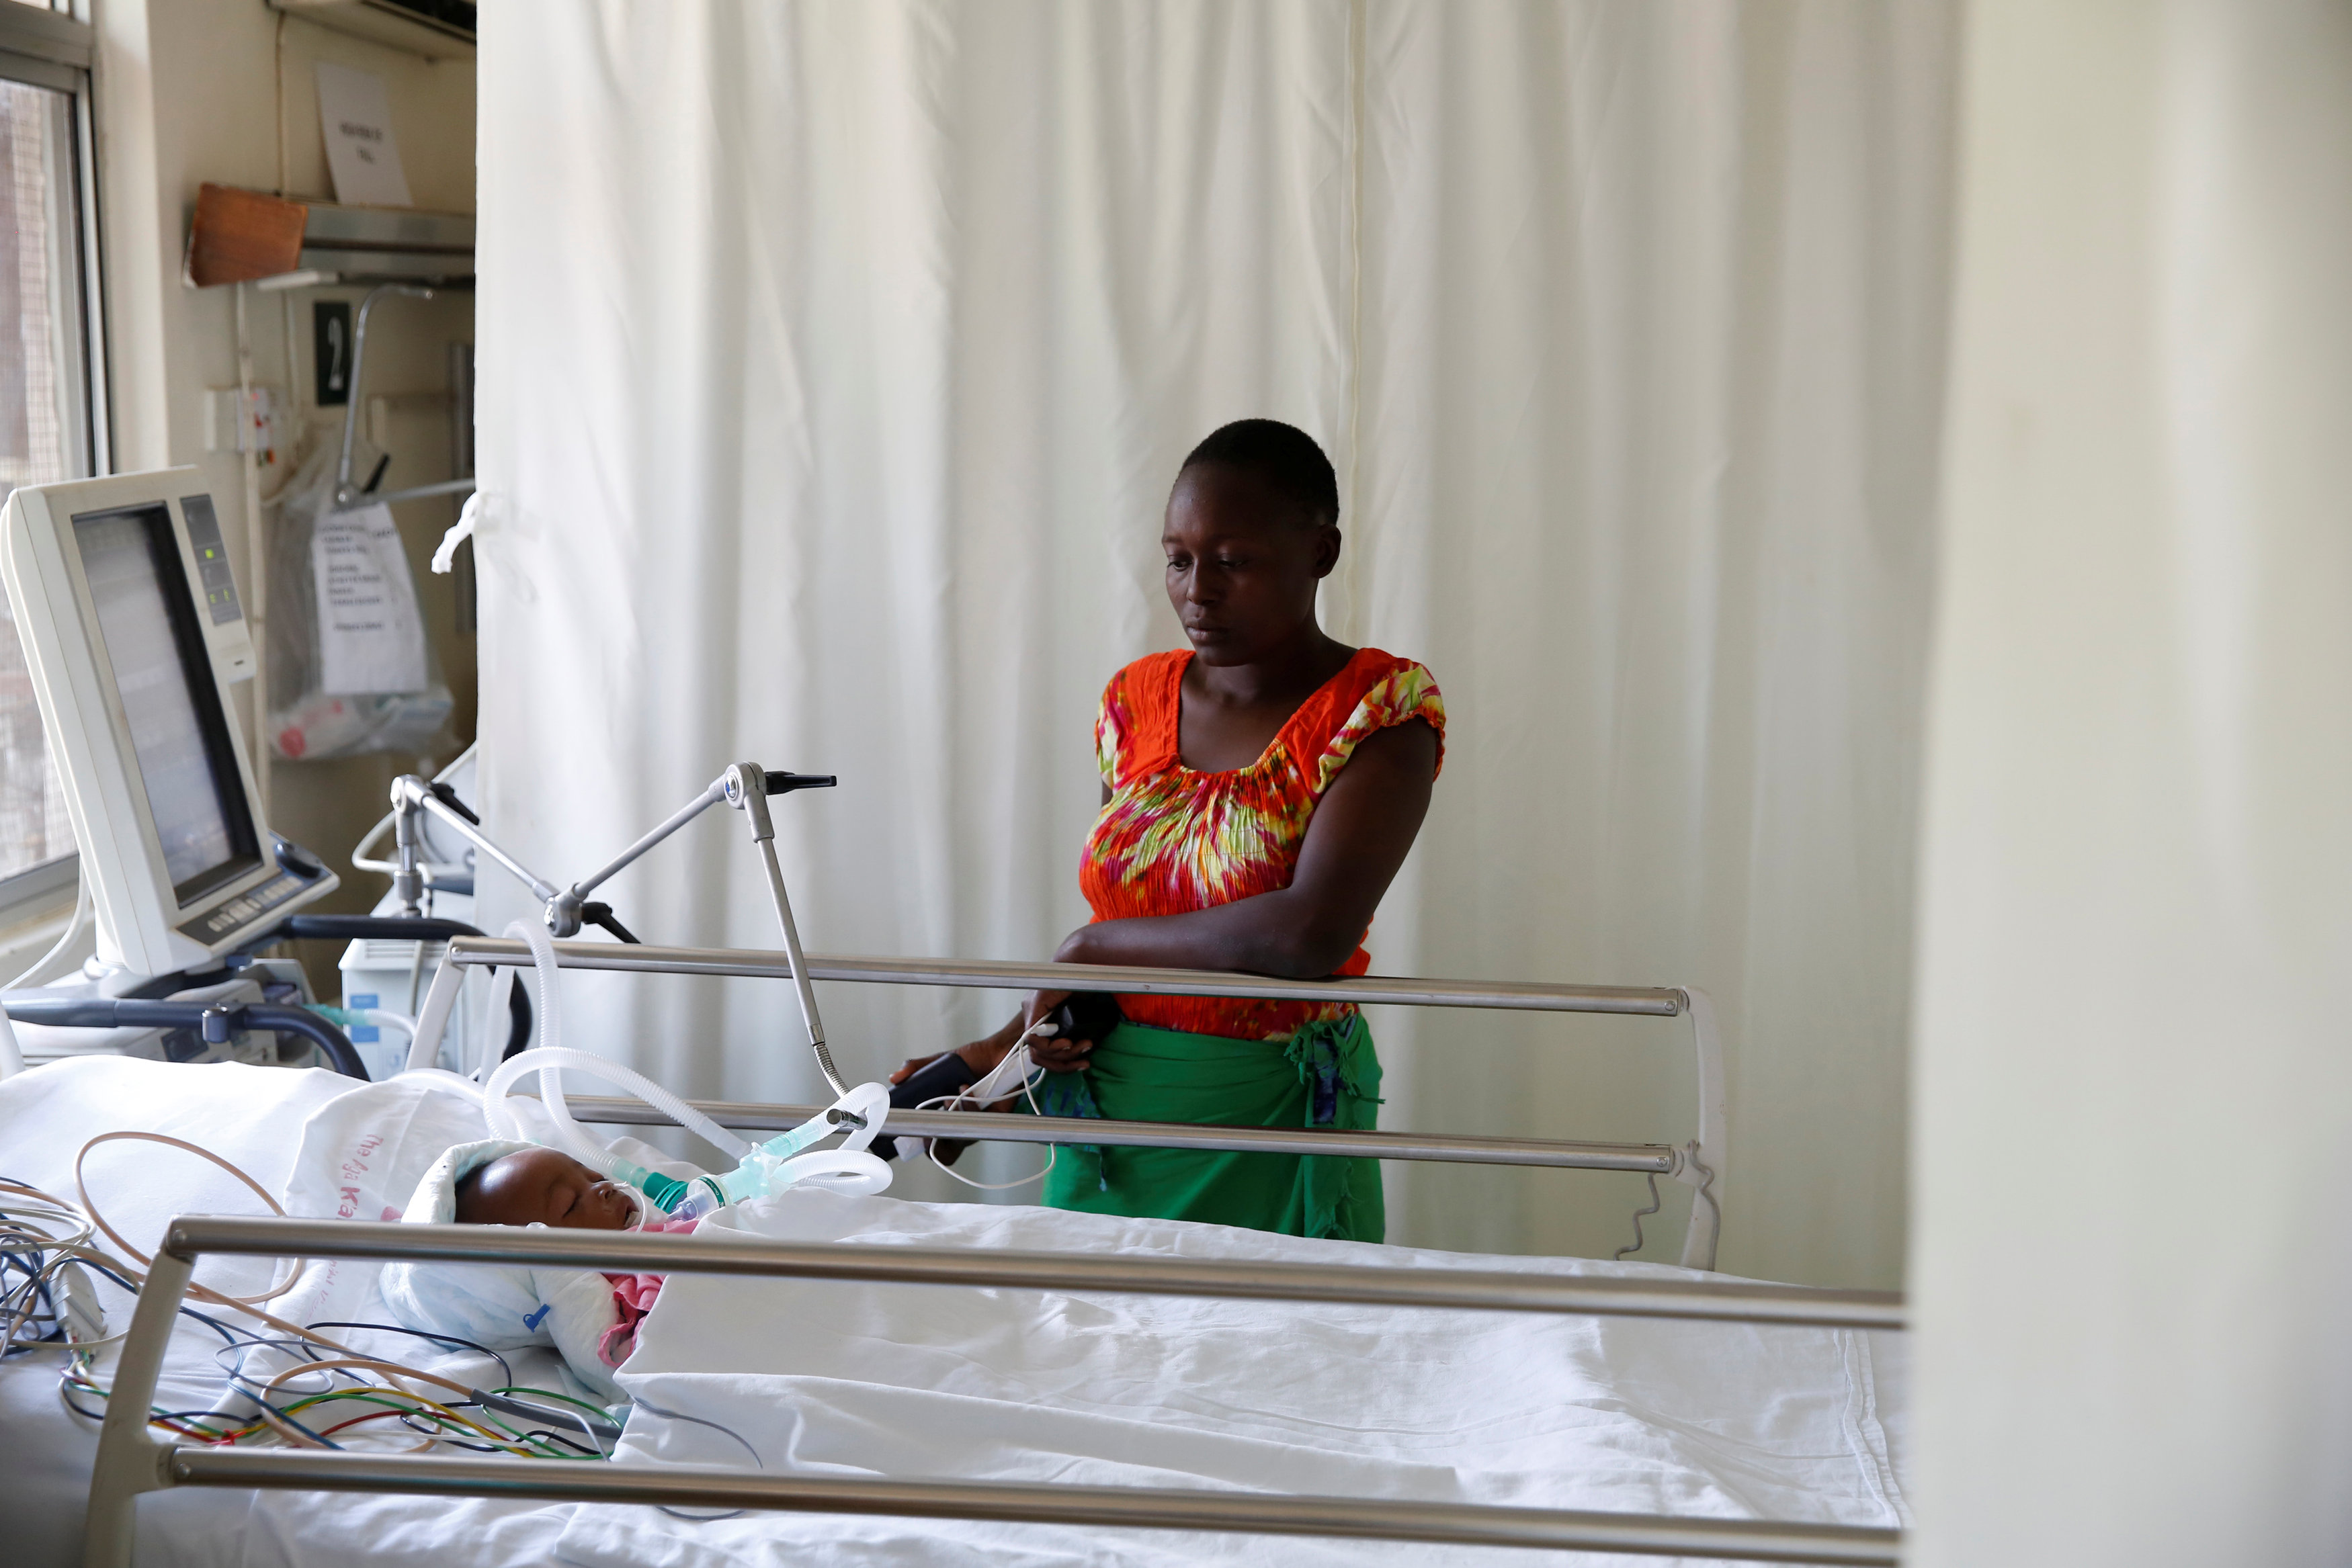 Lenzer, mother of six month-old Samantha Pendo, stands next to her bed as the girl remains in critical condition in the Intensive Care Unit of Aga Khan Hospital in Kisumu, Kenya August 14, 2017. REUTERS/Baz Ratner